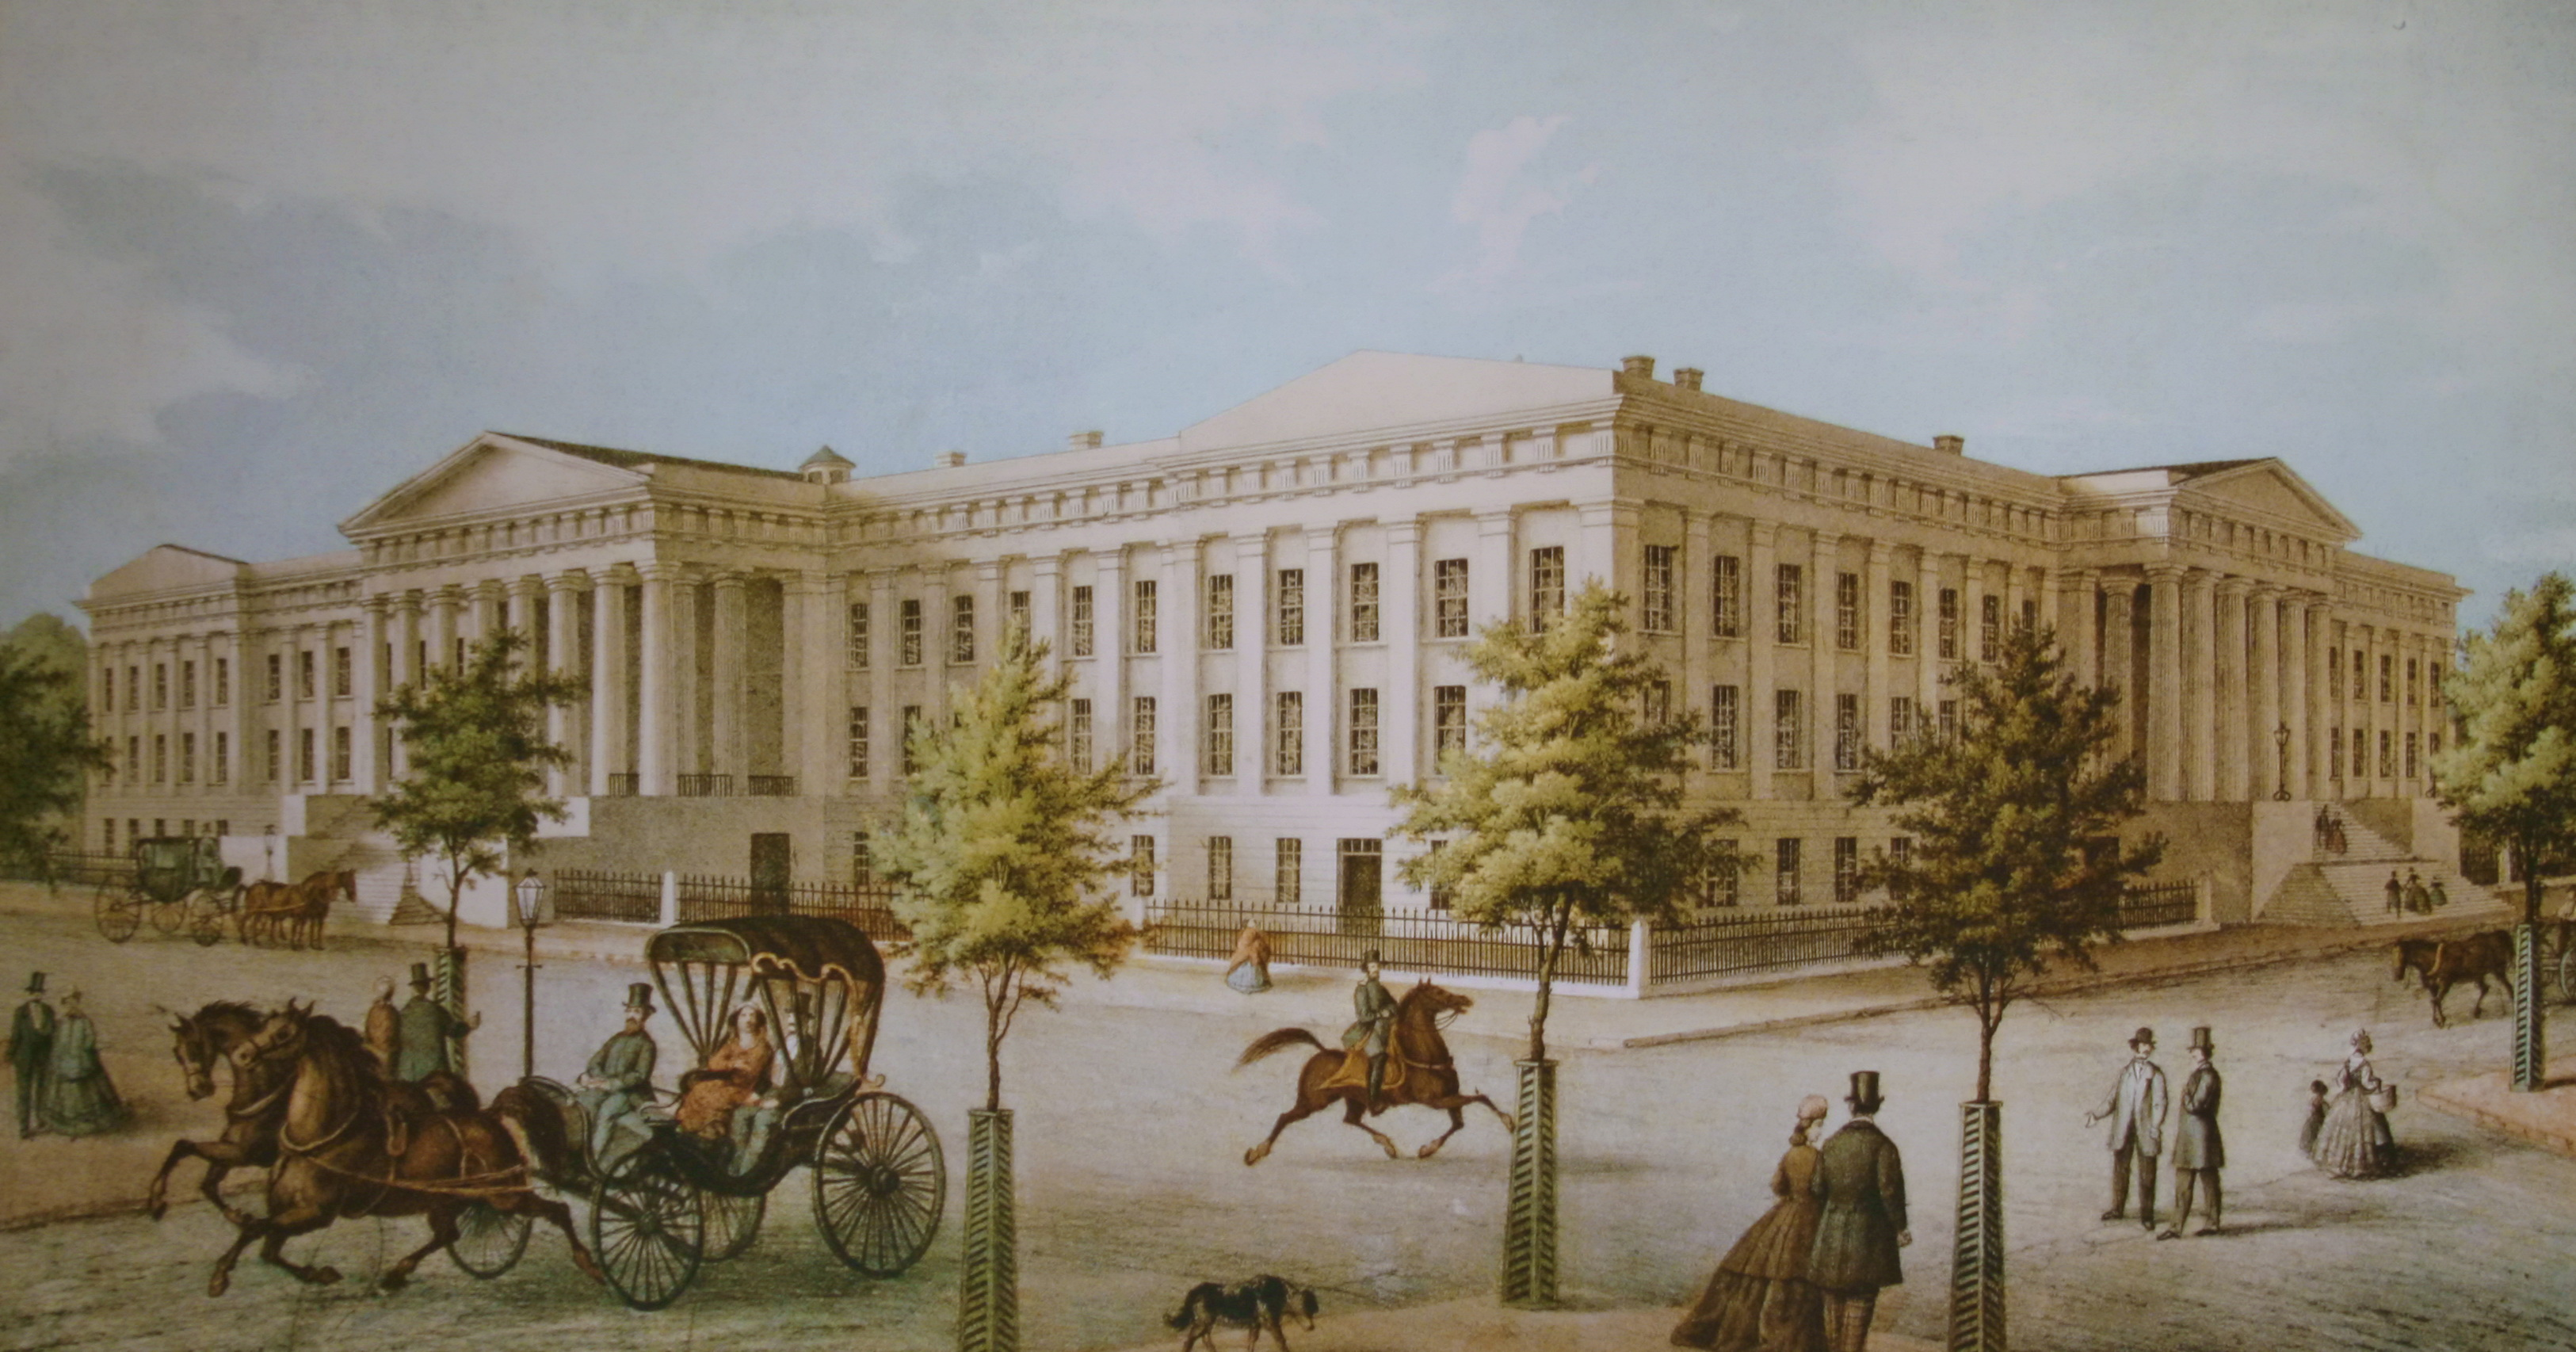 http://upload.wikimedia.org/wikipedia/commons/e/eb/The_Patent_Office.jpg